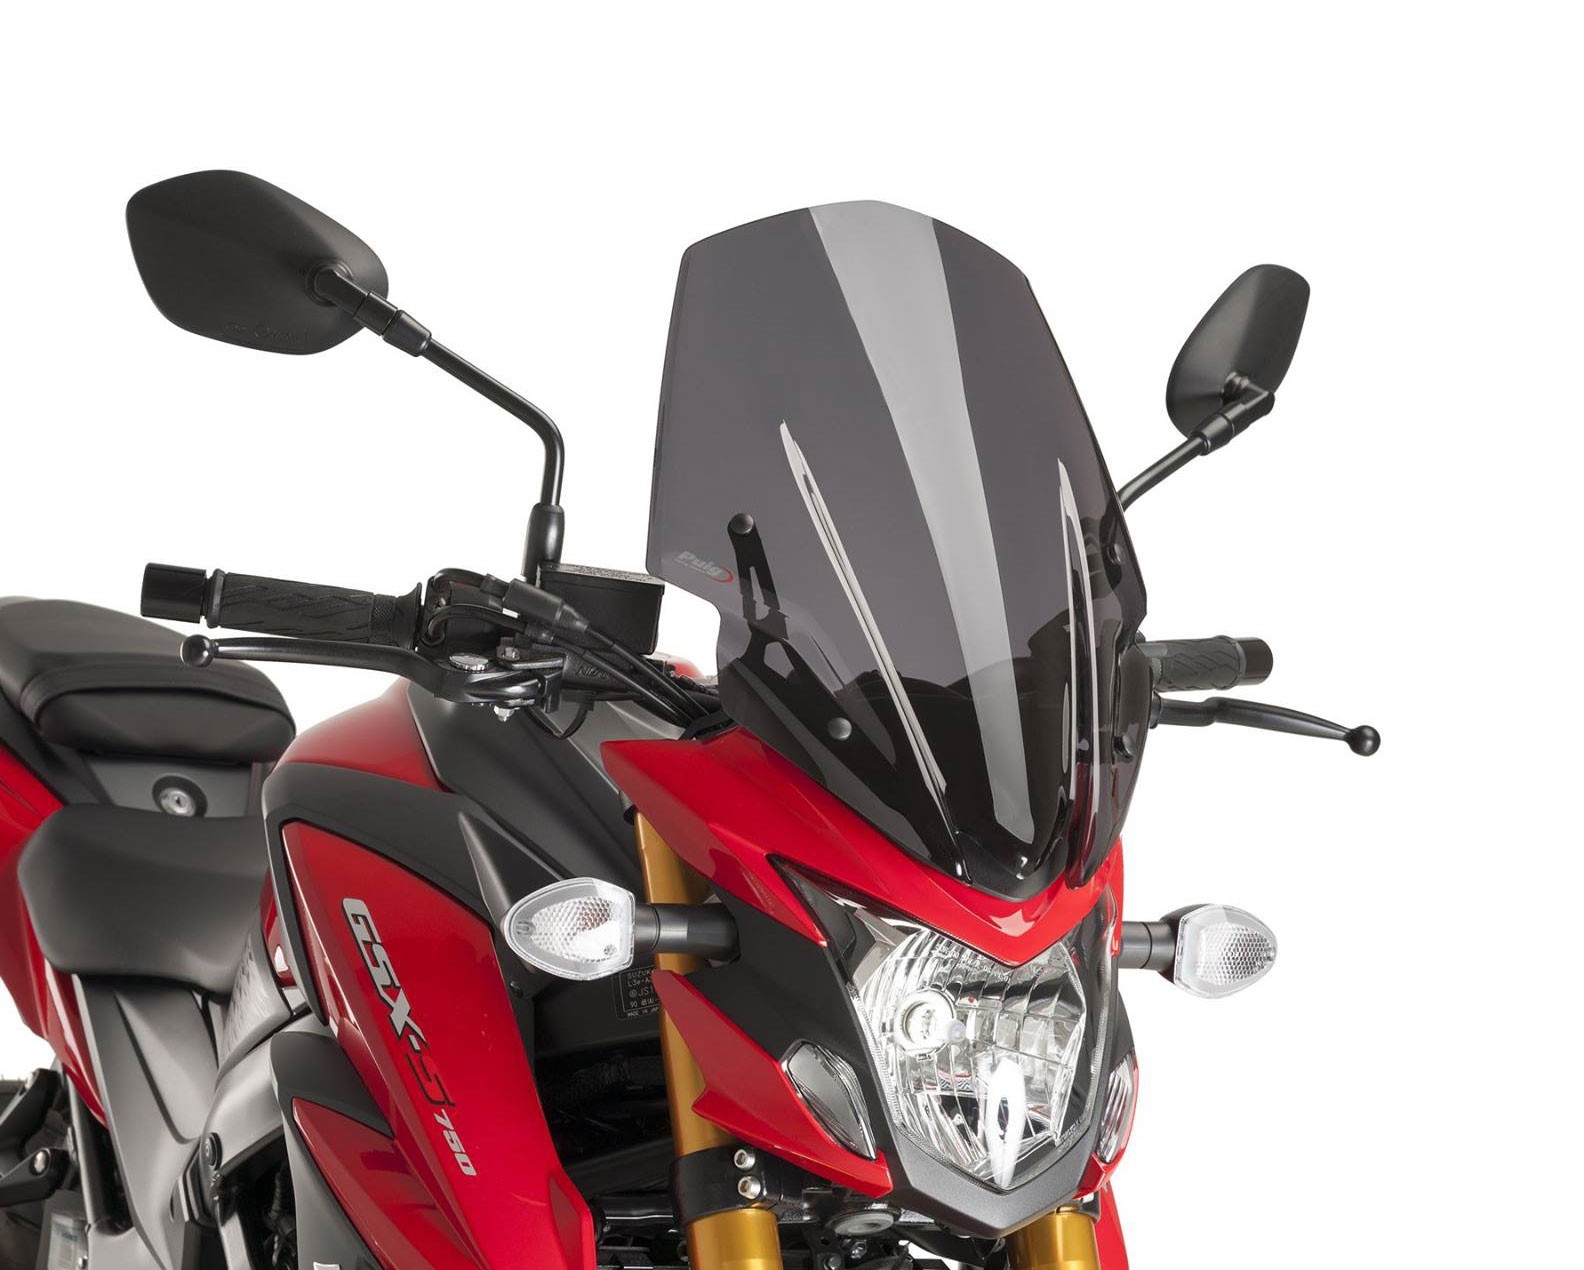 PUIG SCREEN NAKED TOURING COMPATIBLE FOR SUZUKI GSX-S 750